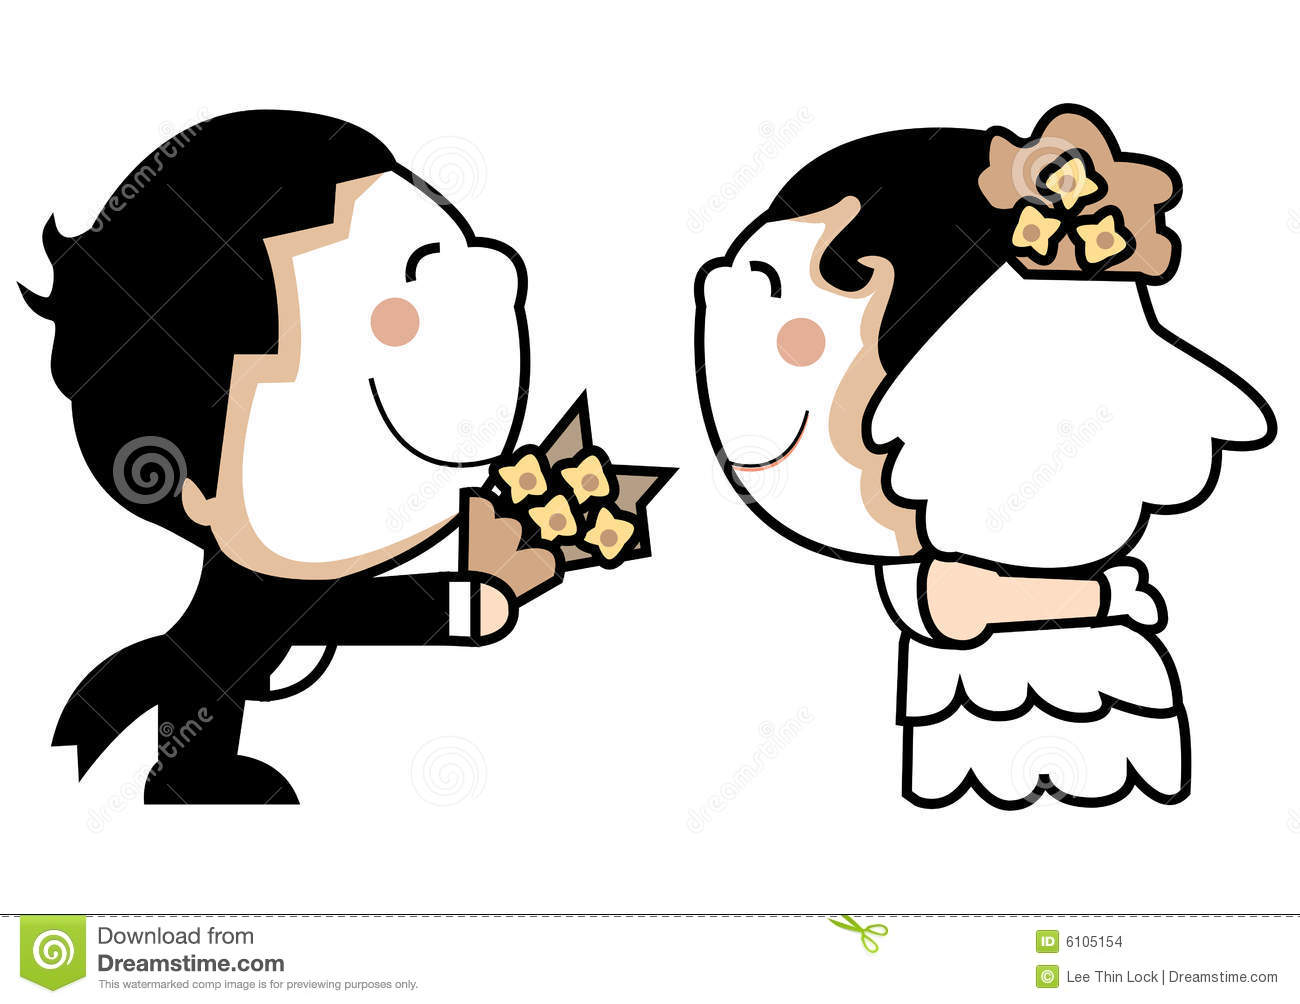 Cartoon Wedding Cute Couple Stock Illustrations 13 698 Cartoon Wedding Cute Couple Stock Illustrations Vectors Clipart Dreamstime